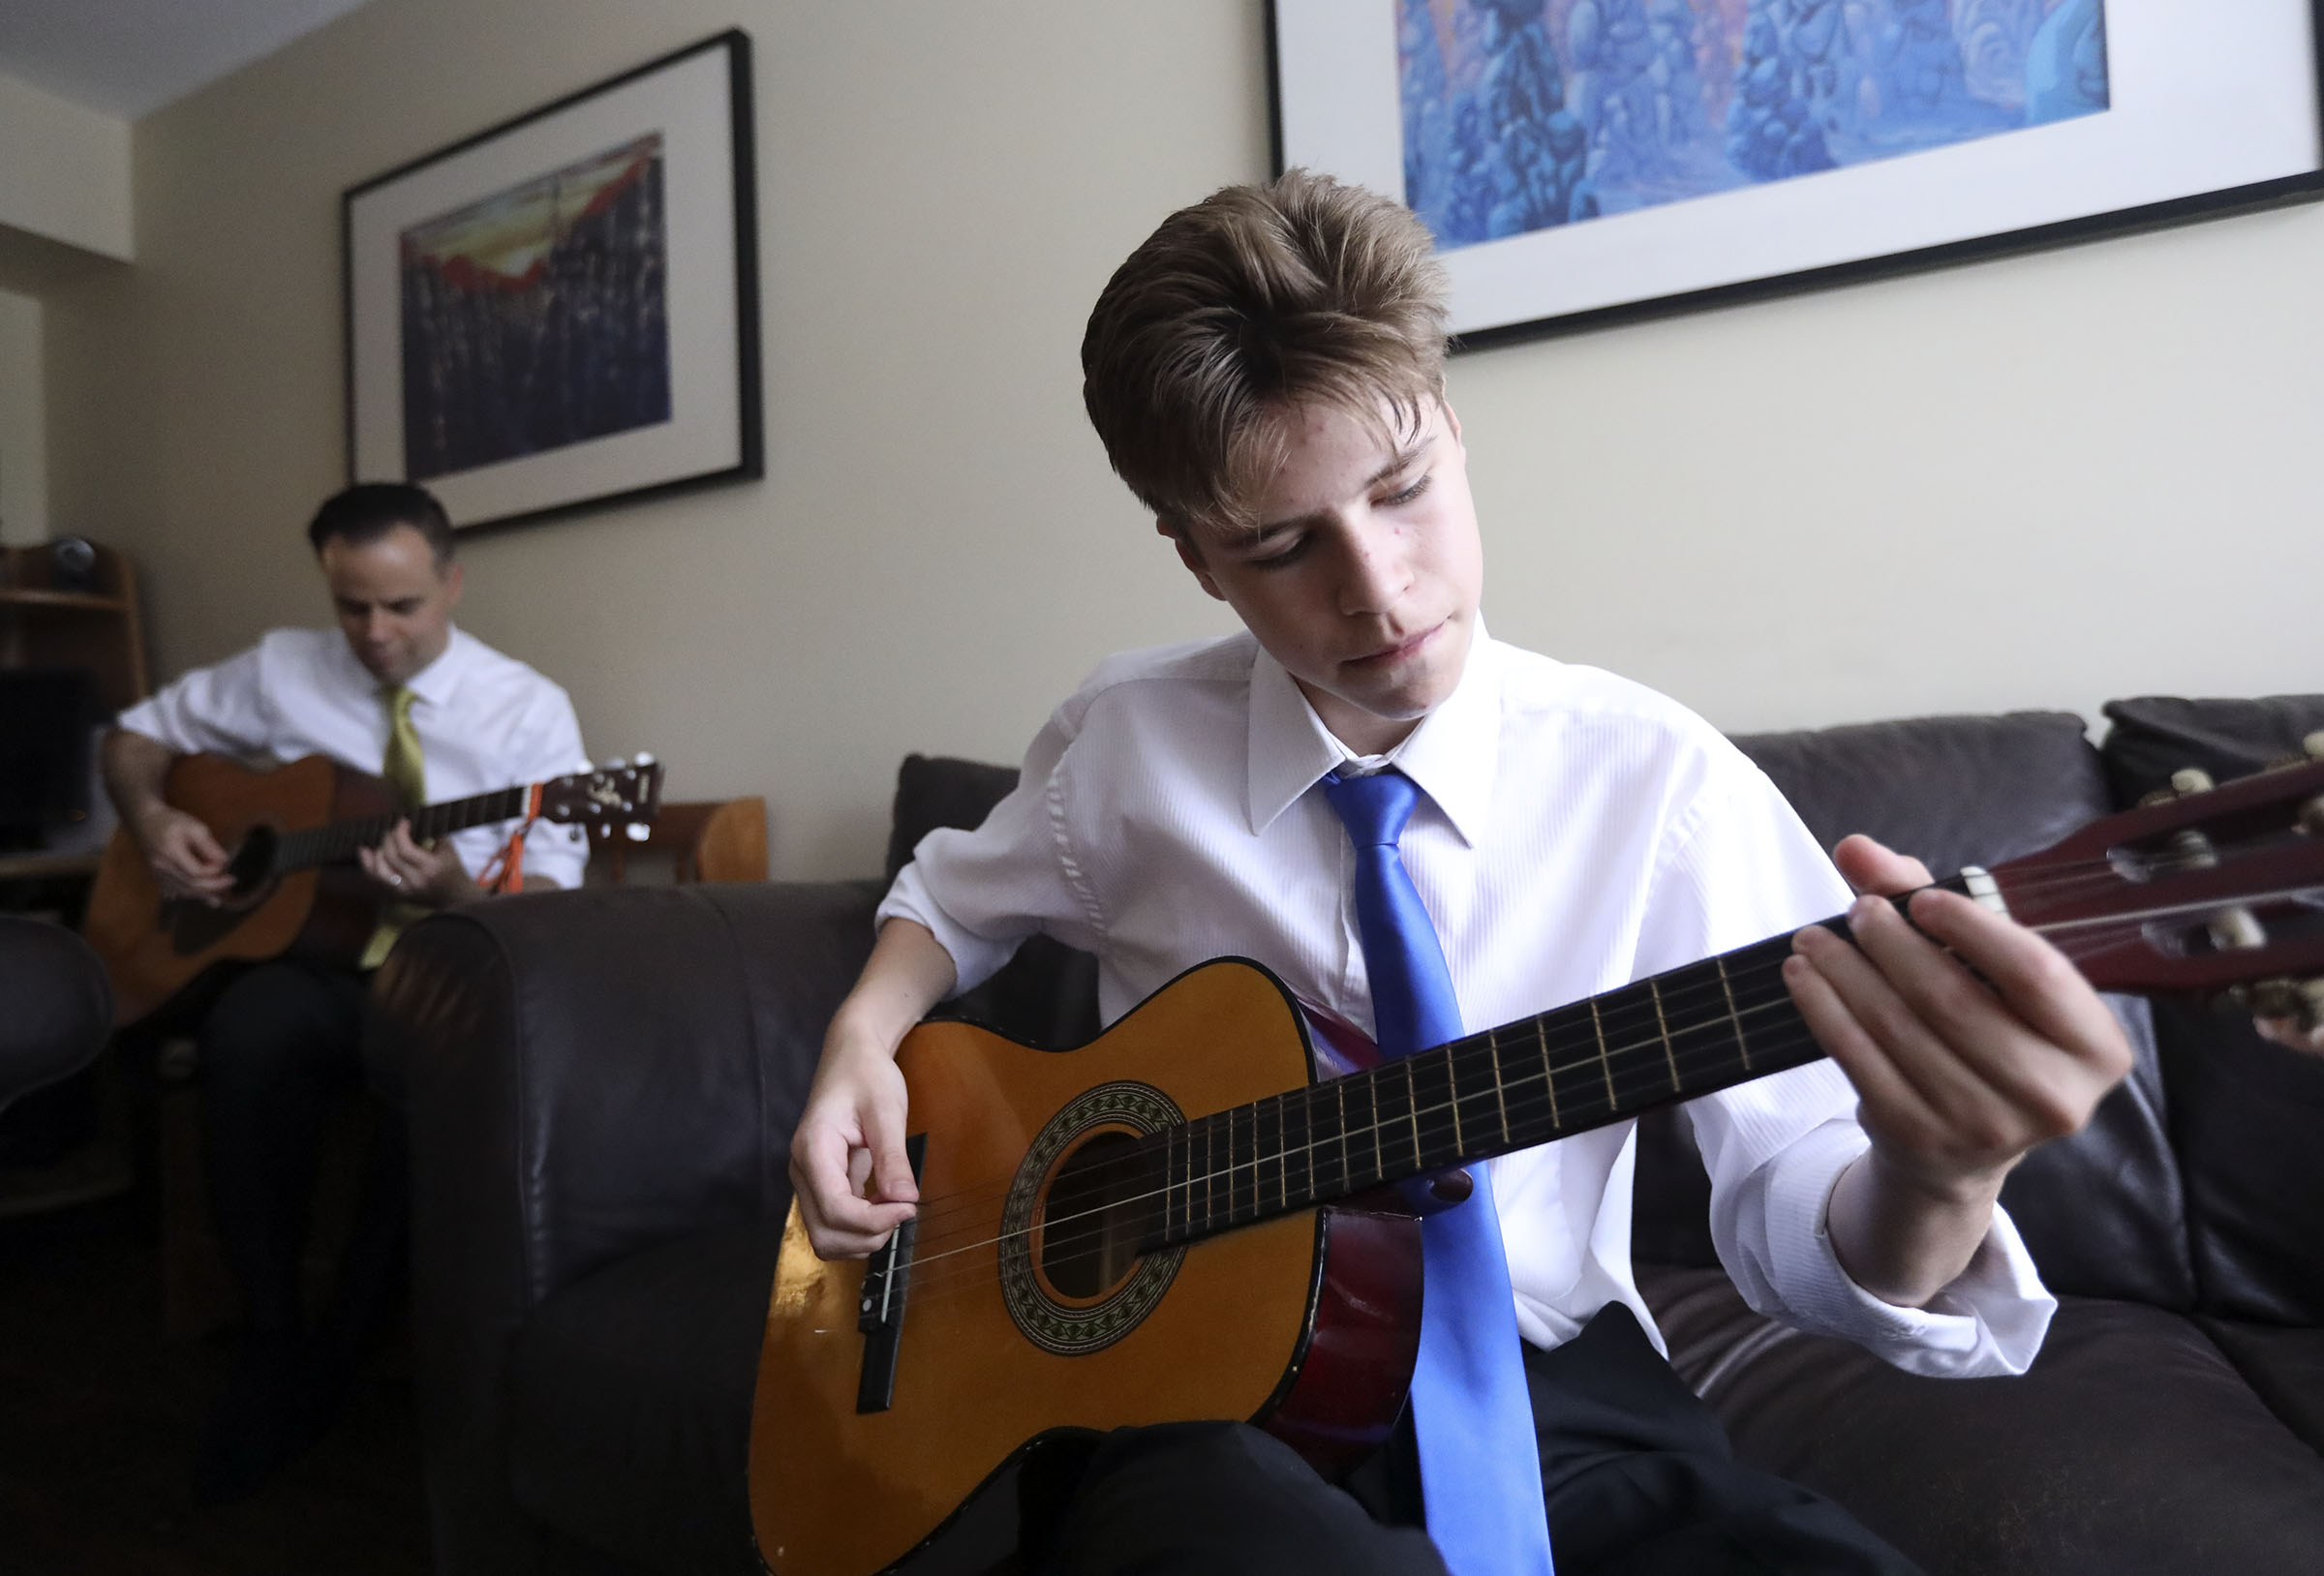 Scott Friesen and his son Zach Friesen play guitar at home in Langley, British Columbia, on Sunday, Sept. 16, 2018.